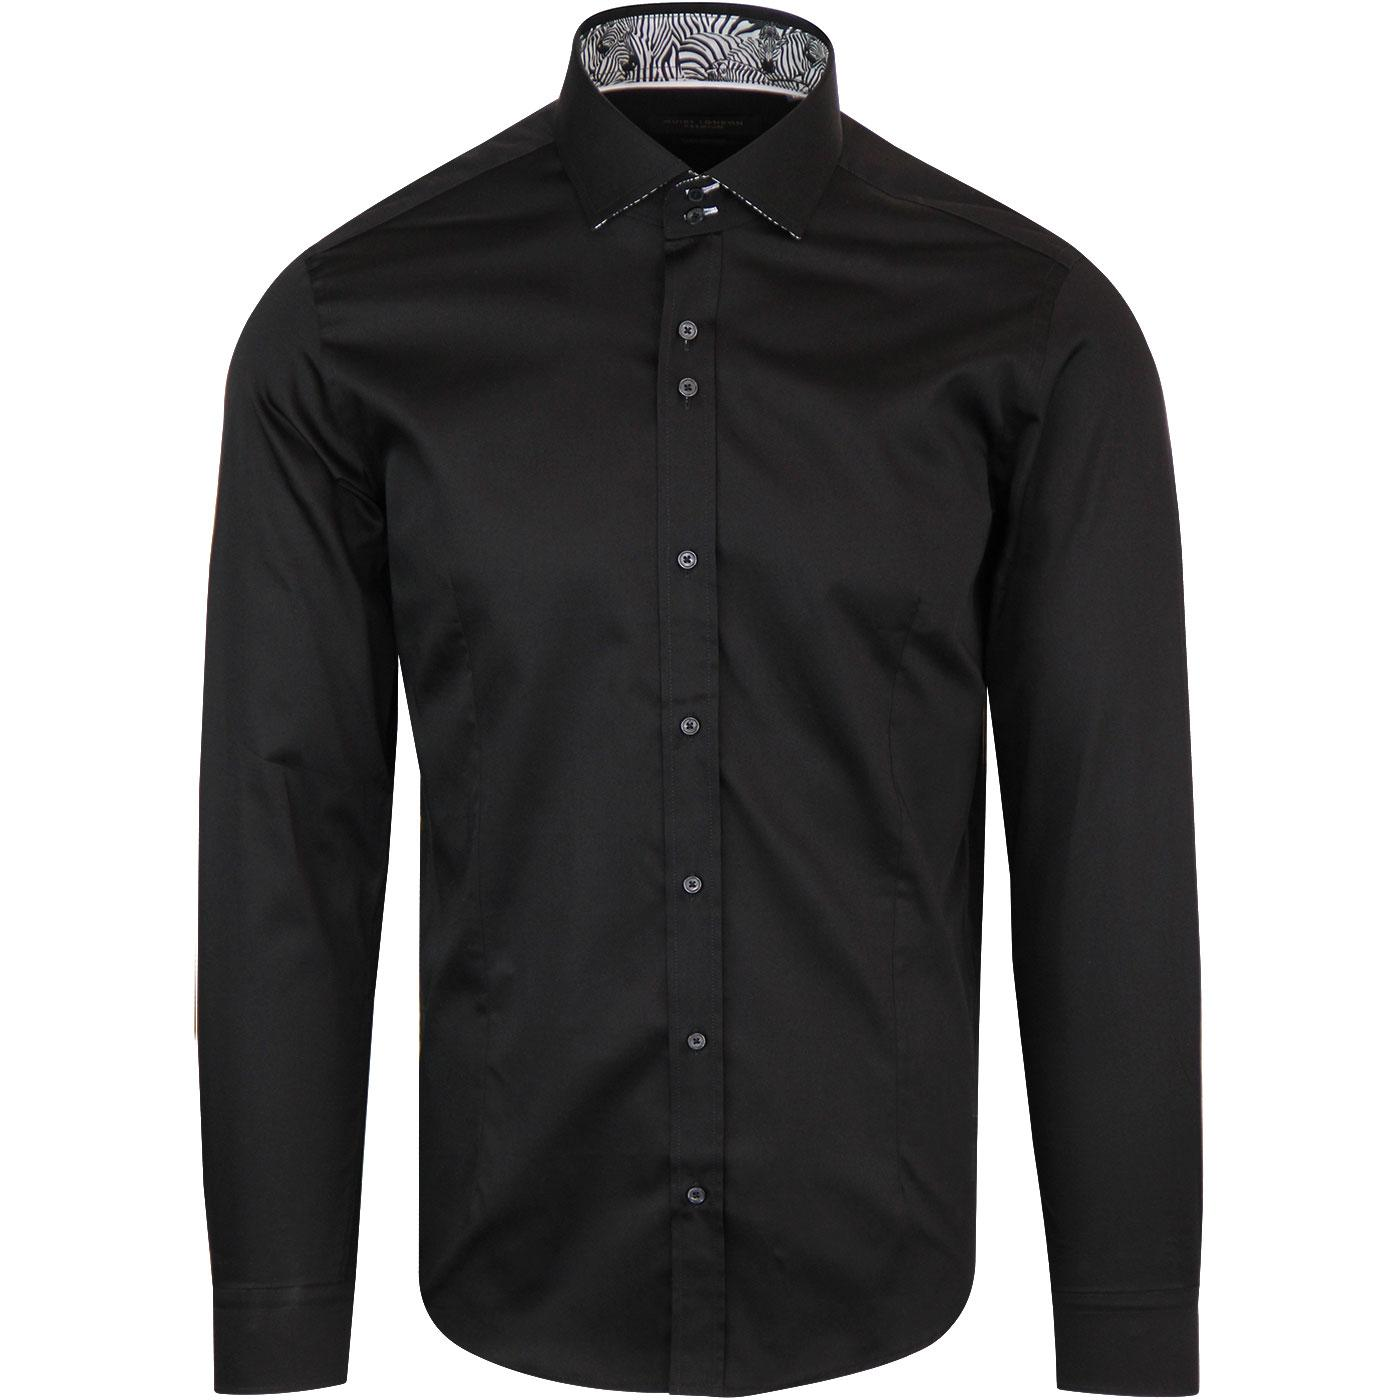 GUIDE LONDON Retro Mod Zebra Trim Shirt (Black)